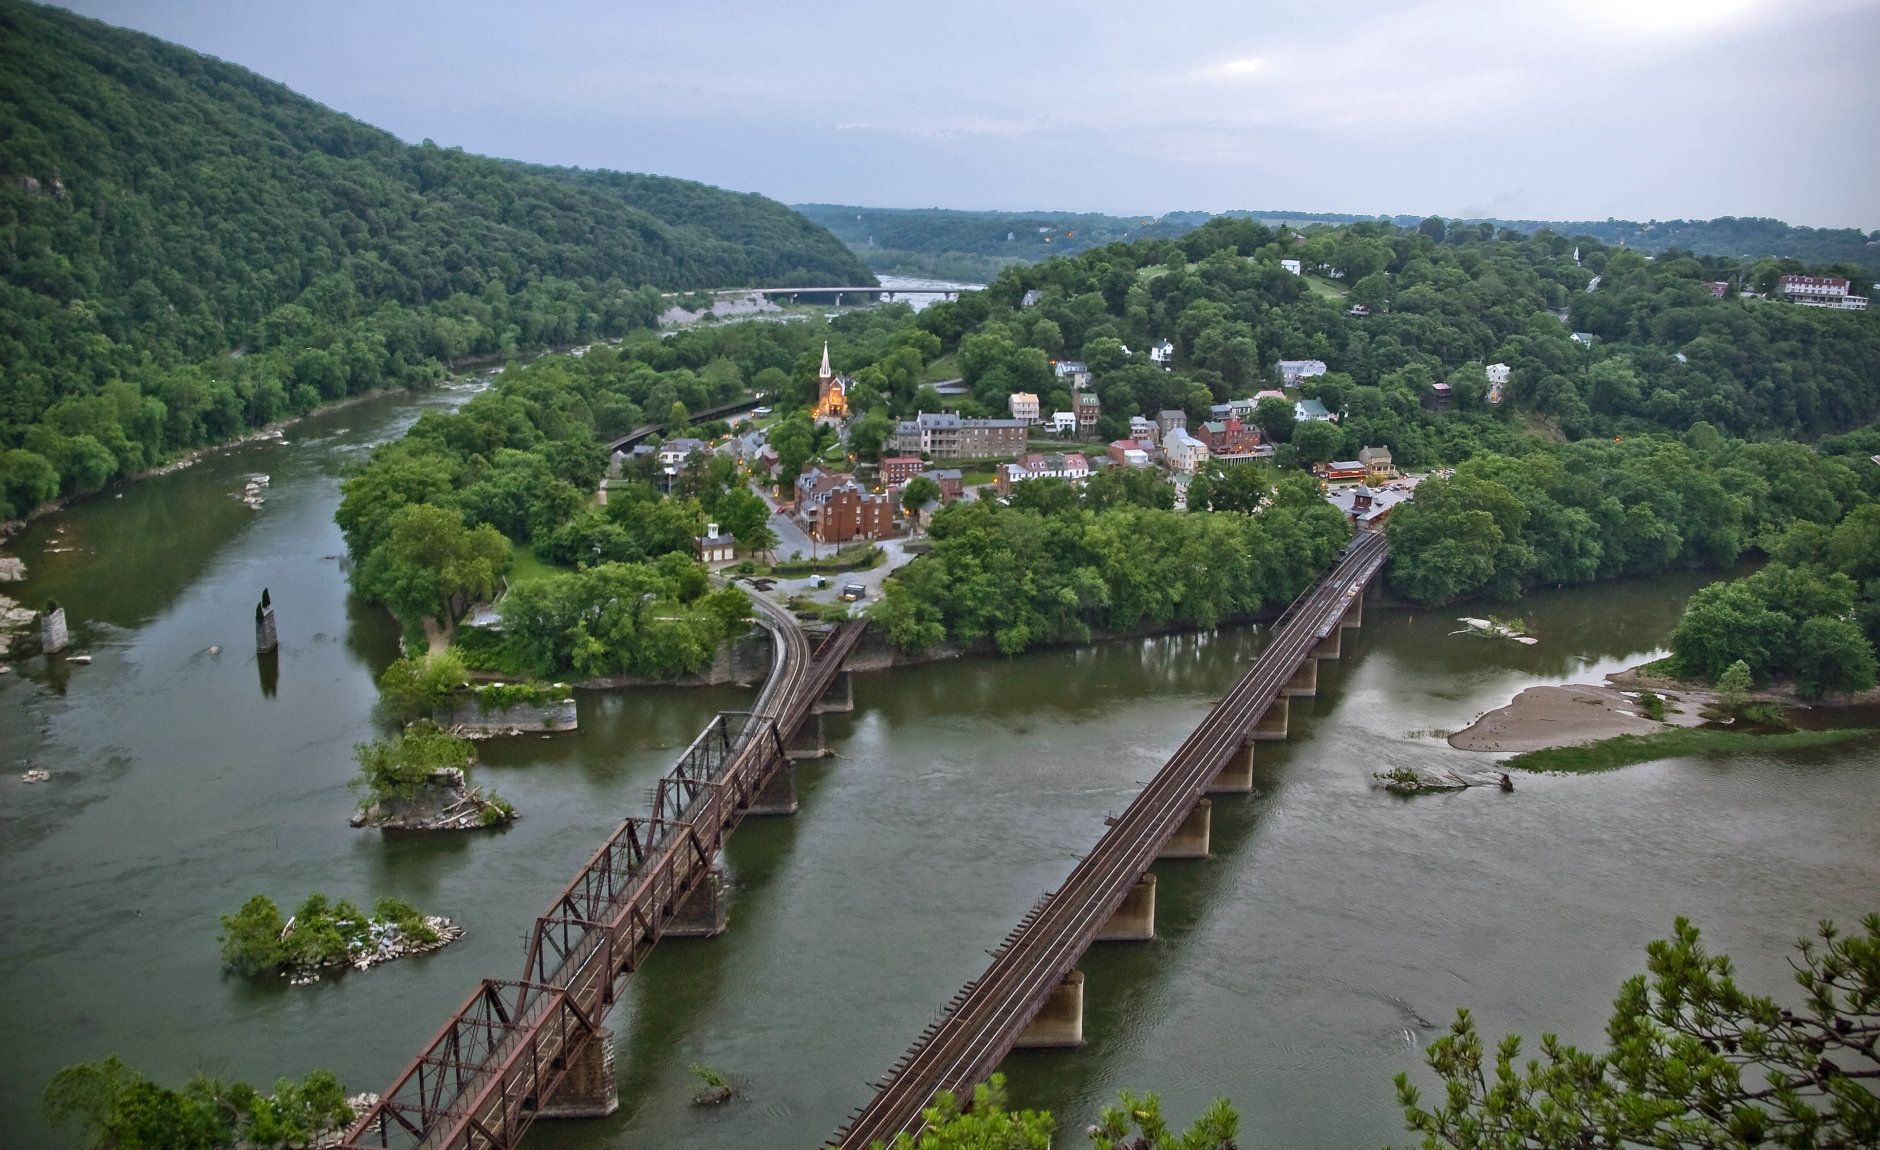 ** ADVANCE FOR WEEKEND EDITIONS, JUNE 13-14 ** FILE - This July 20, 2008 file photo offers a view looking down on Harpers Ferry, W.Va., at the conjunction of the Shanandoah, left, and the Potomac Rivers. The town was the site of abolitionist John Brown's infamous 1859 raid on the local arsenal, an event which led toward the Civil War. (AP/ Martin B. Cherry)